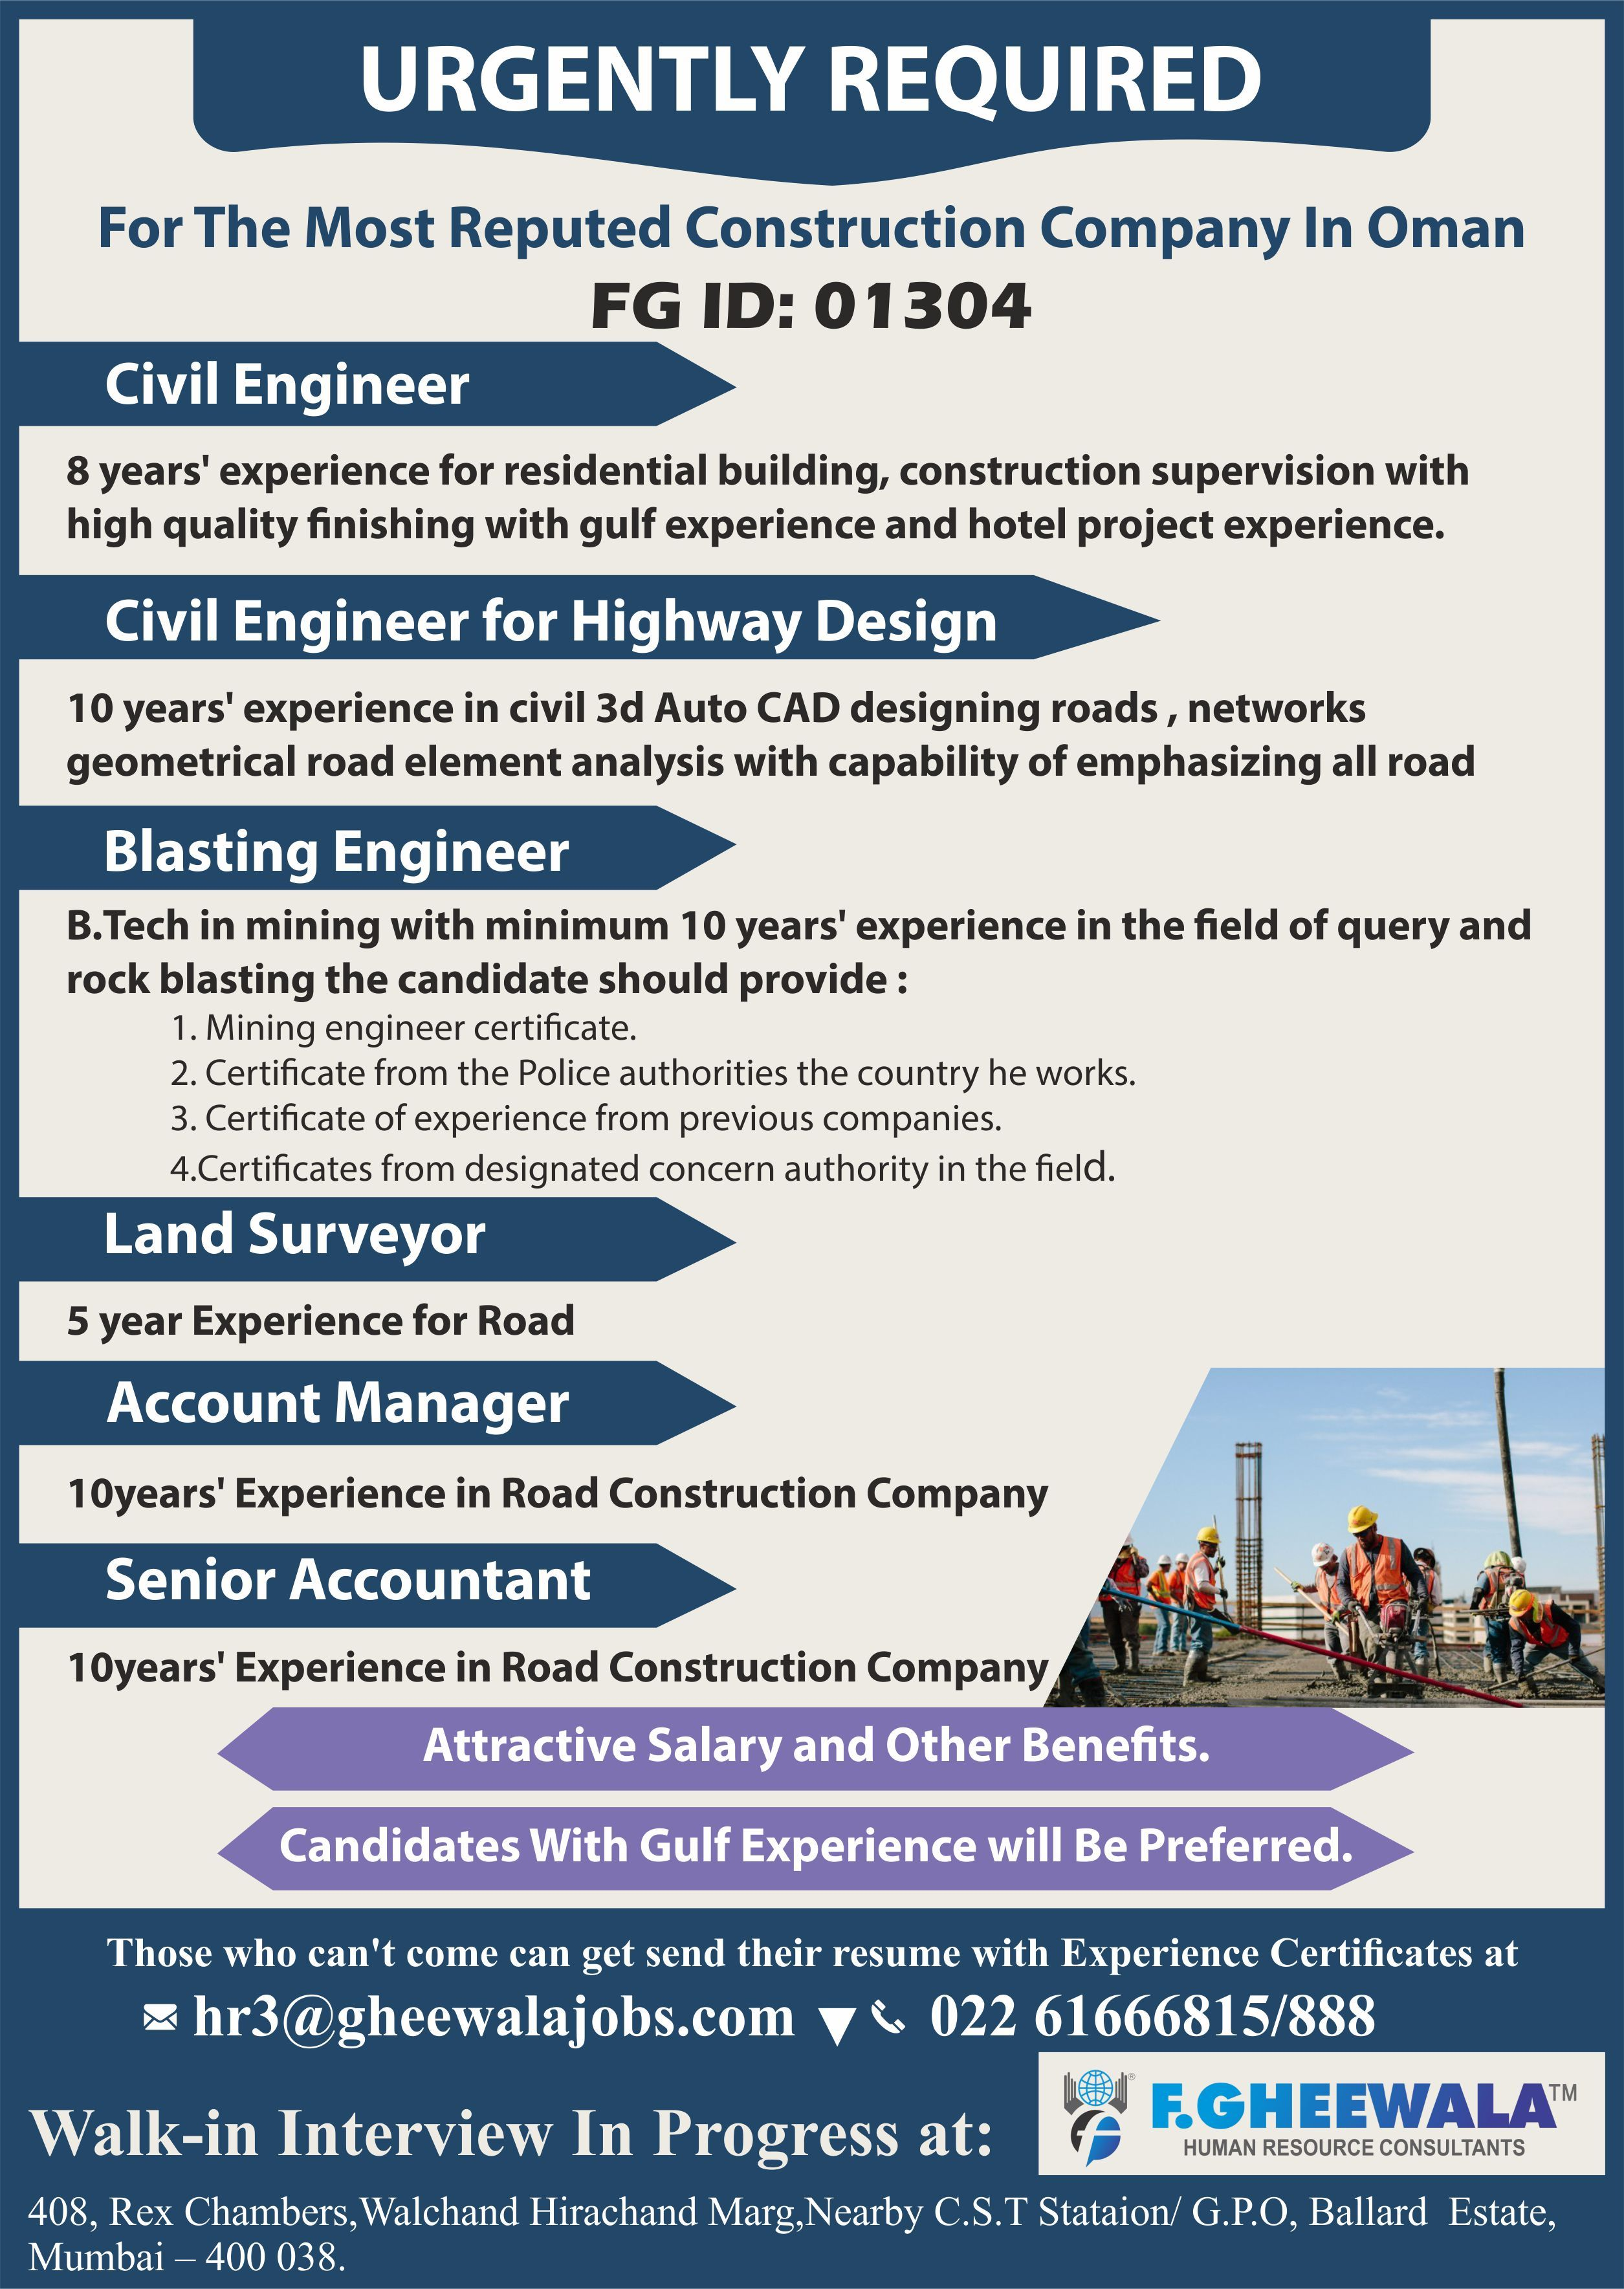 Urgently Required For The Most Reputed Construction Company In Oman Please Send Your Updated Cv